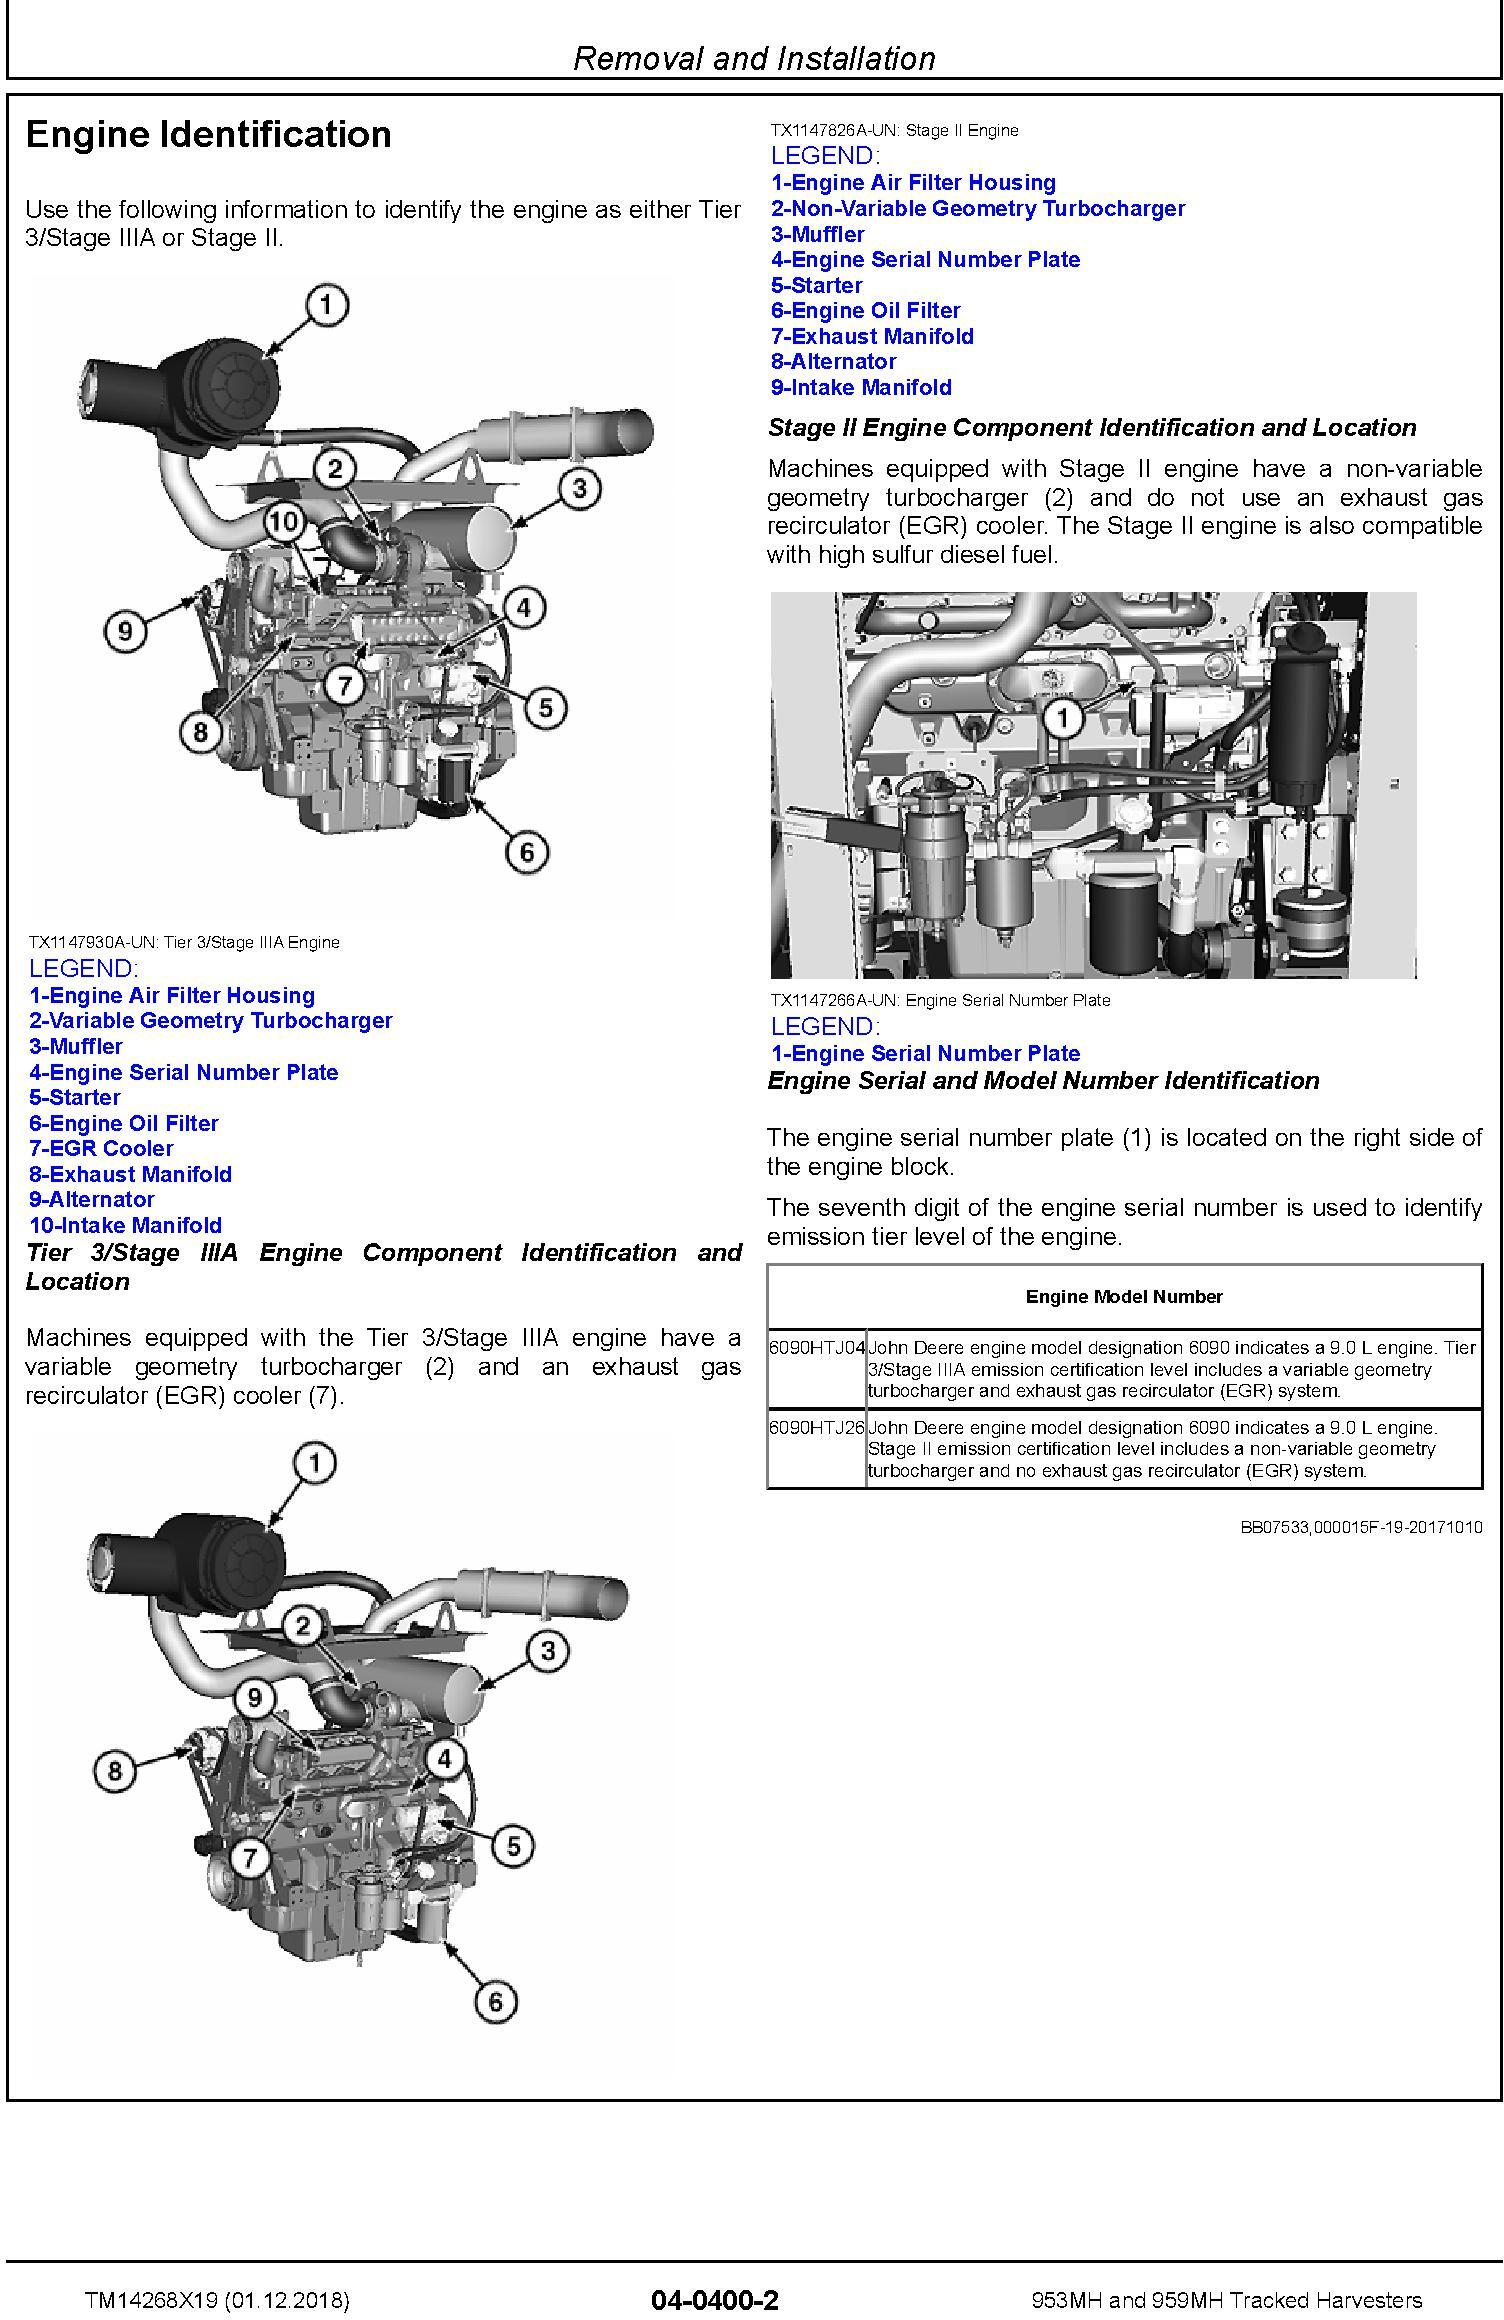 John Deere 953MH, 959MH (SN.C317982-,D317982-) Tracked Harvesters Service Repair Manual (TM14268X19) - 3